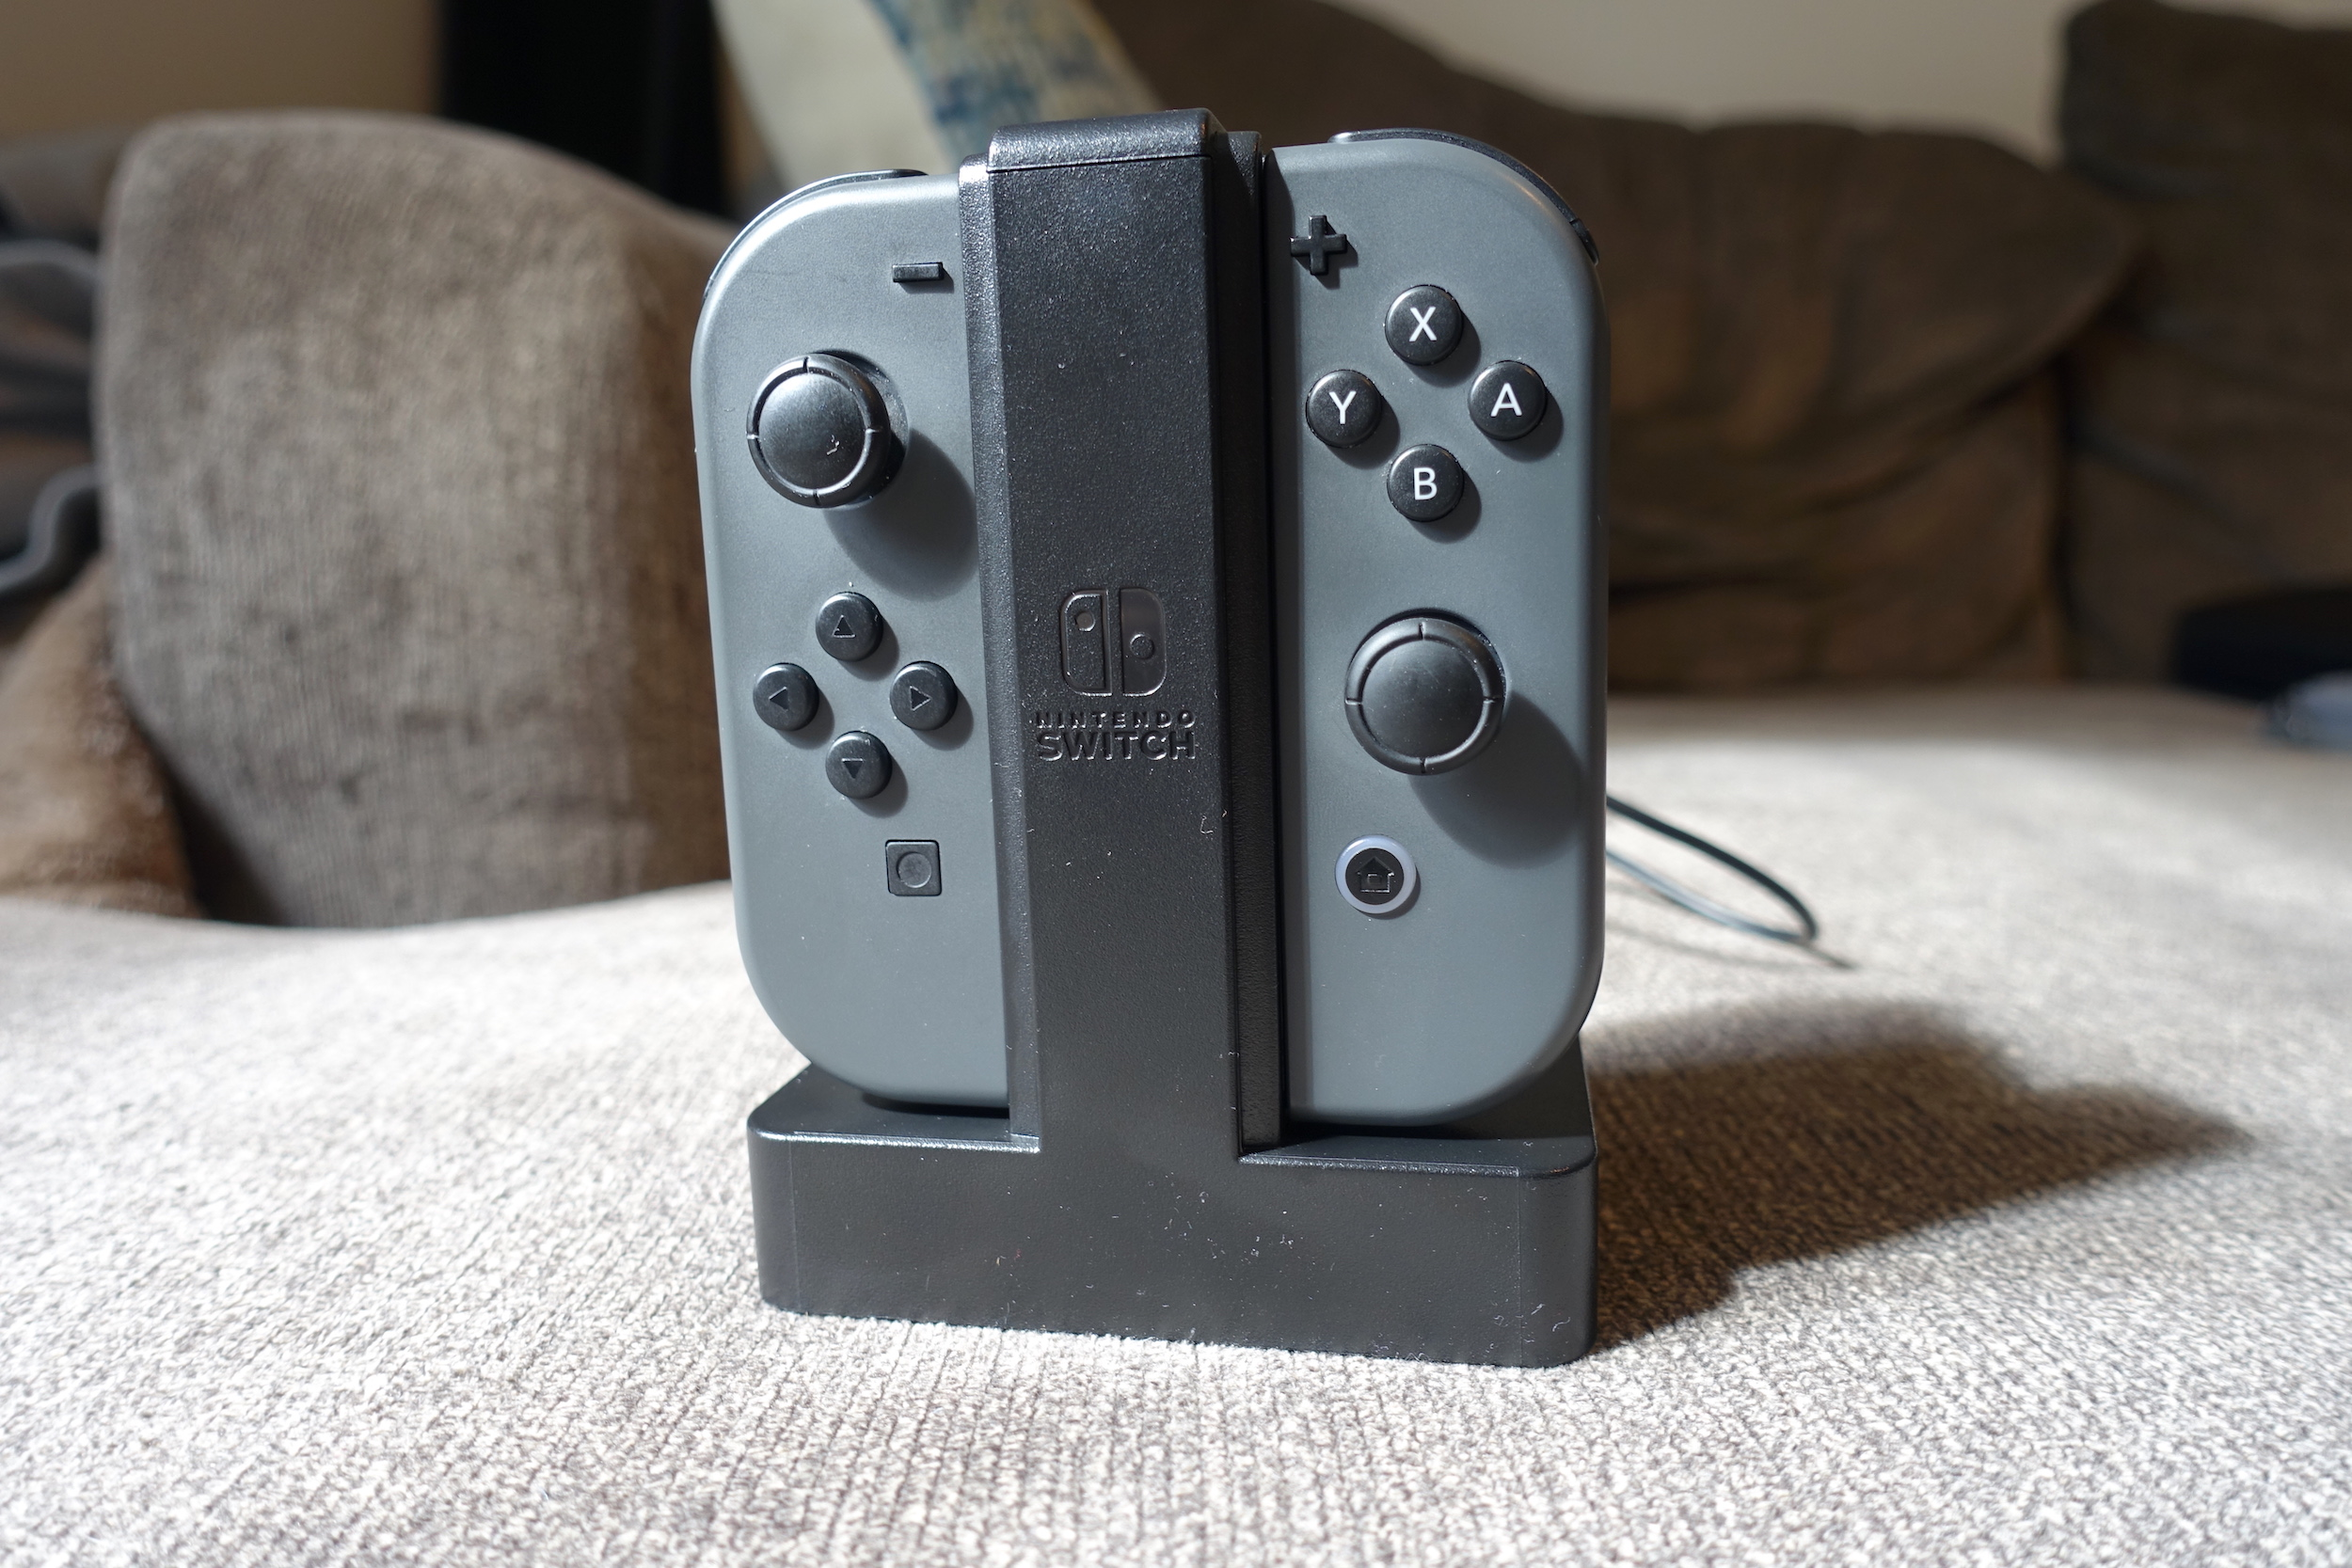 PowerA's Joy-Con Charging Dock is a recommended accessory for Nintendo Switch owners.